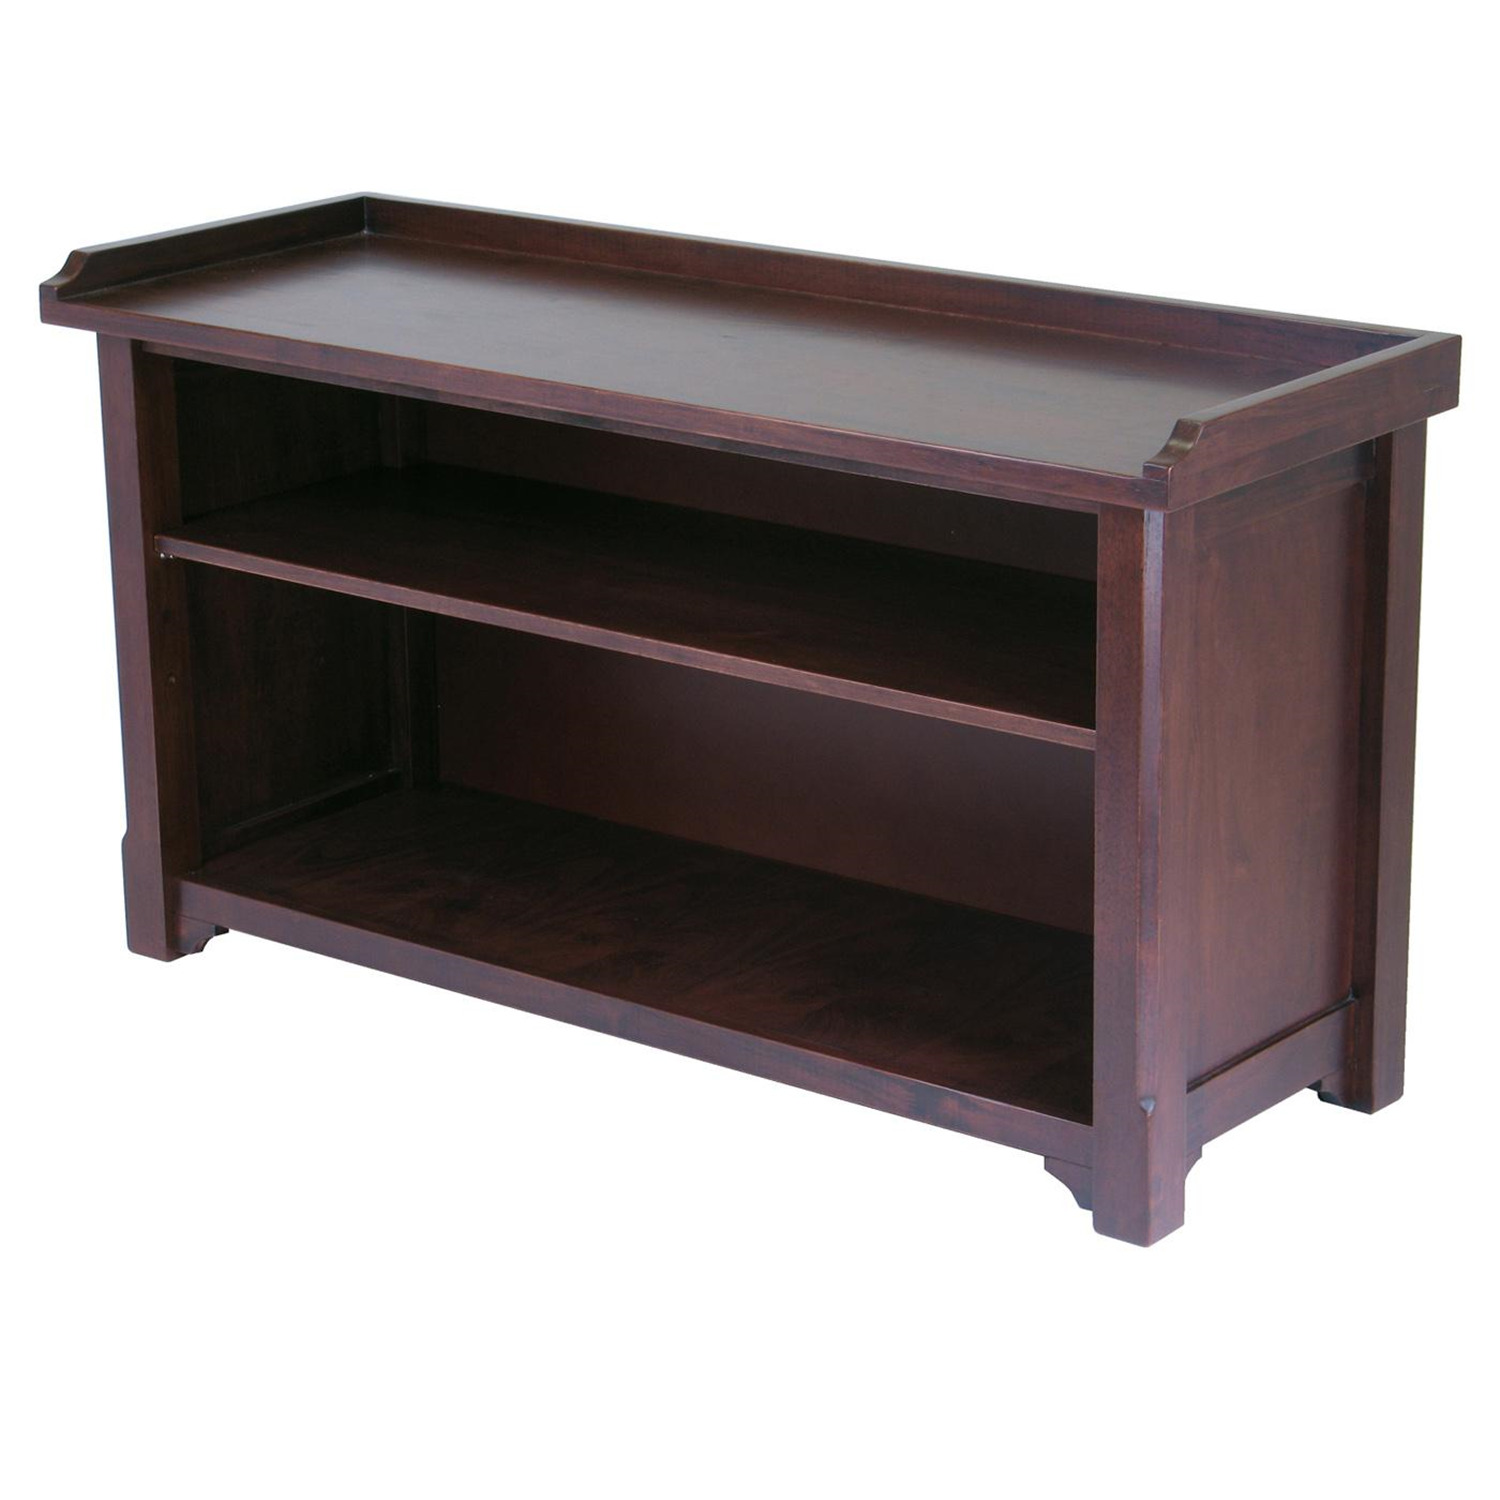 Milan Bench with Storage shelf   - [94640]